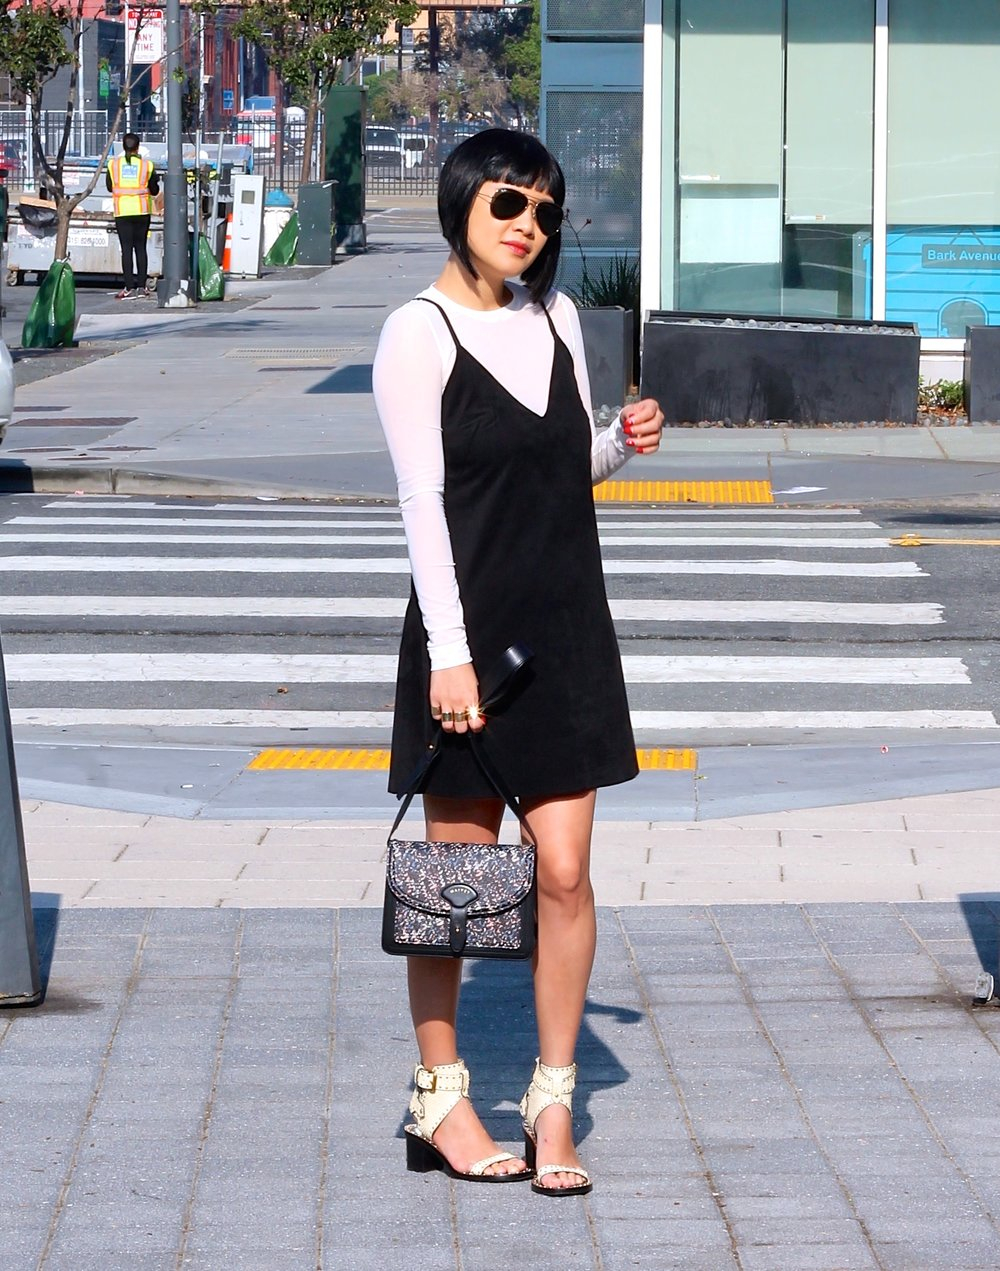 Aritzia dress and tshirt, Maiyet bag, Isabel Marant shoes, Ray-Ban sunglasses